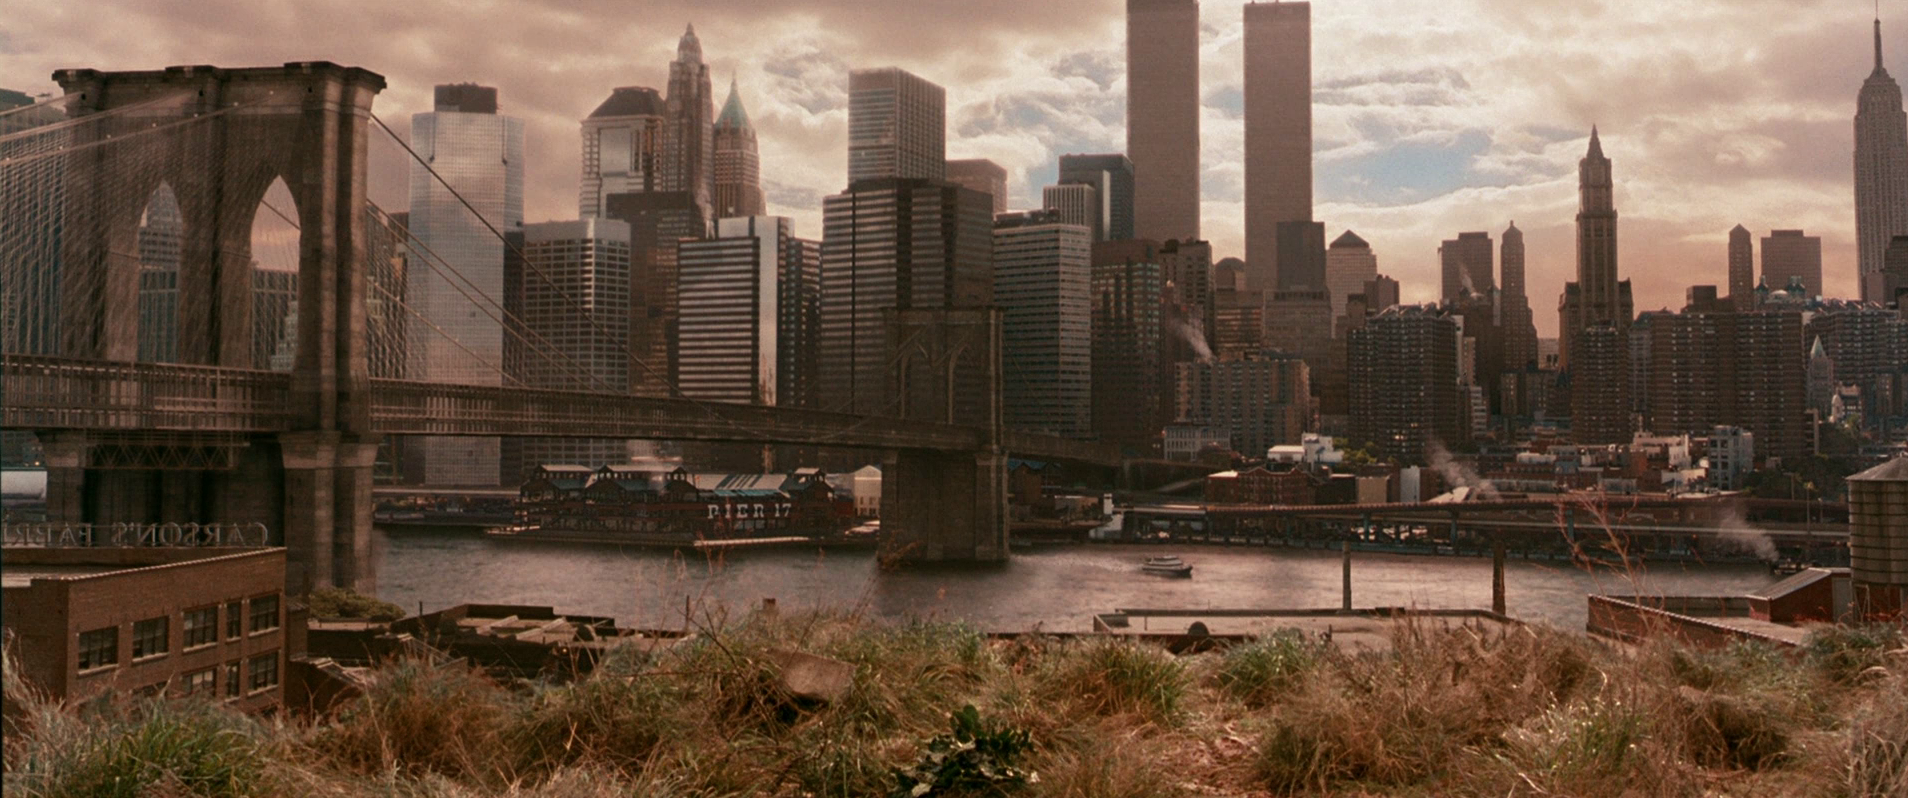 Manhattan's ever-changing countenance:  Gangs of New York  (2002)